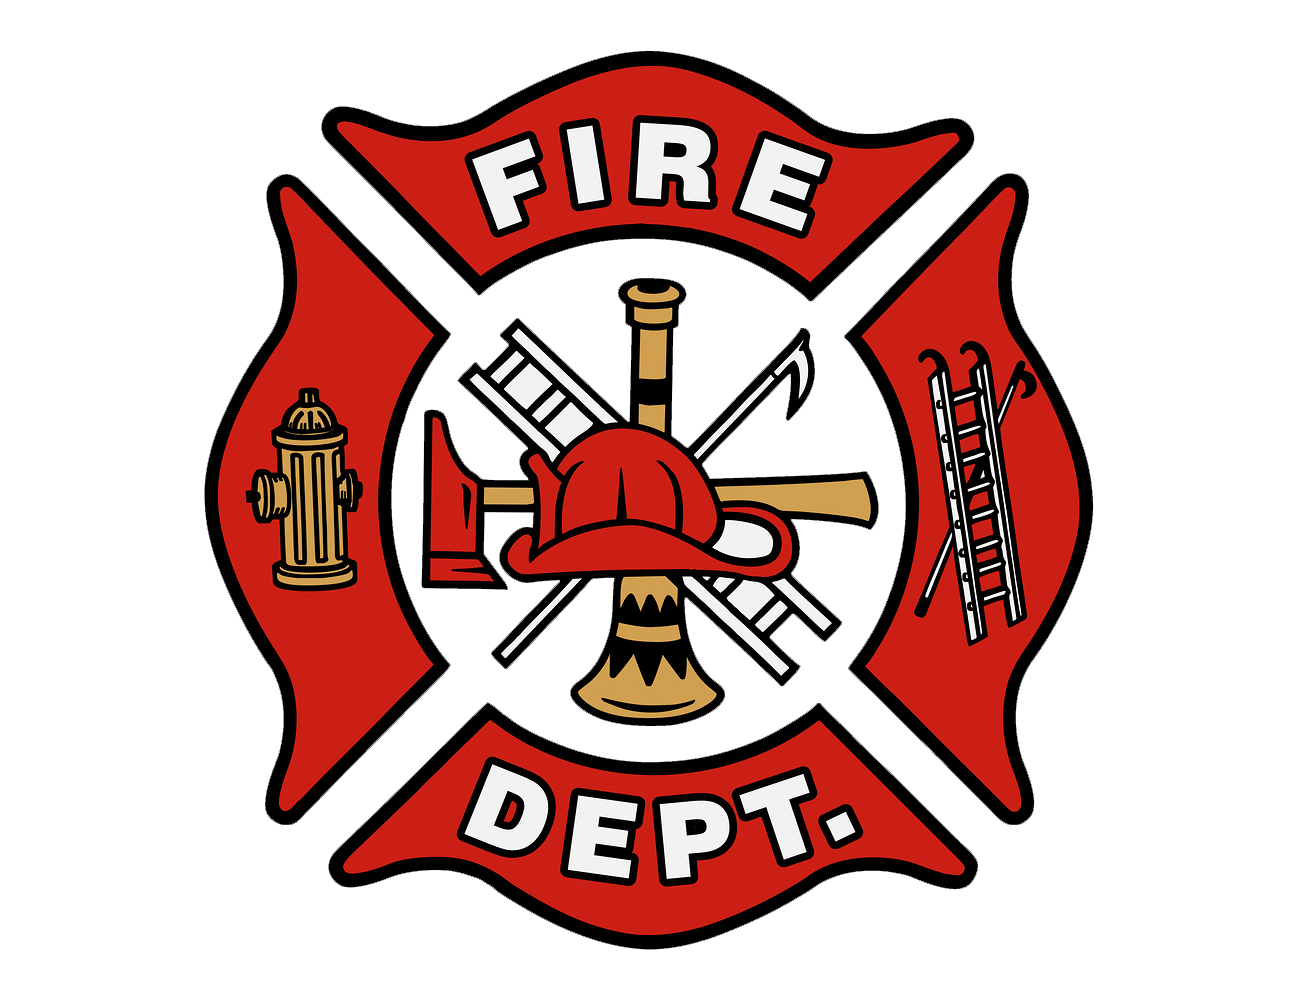 Fireman cross clipart black and white library Fire Dept Symbol Image collections - meaning of text symbols black and white library